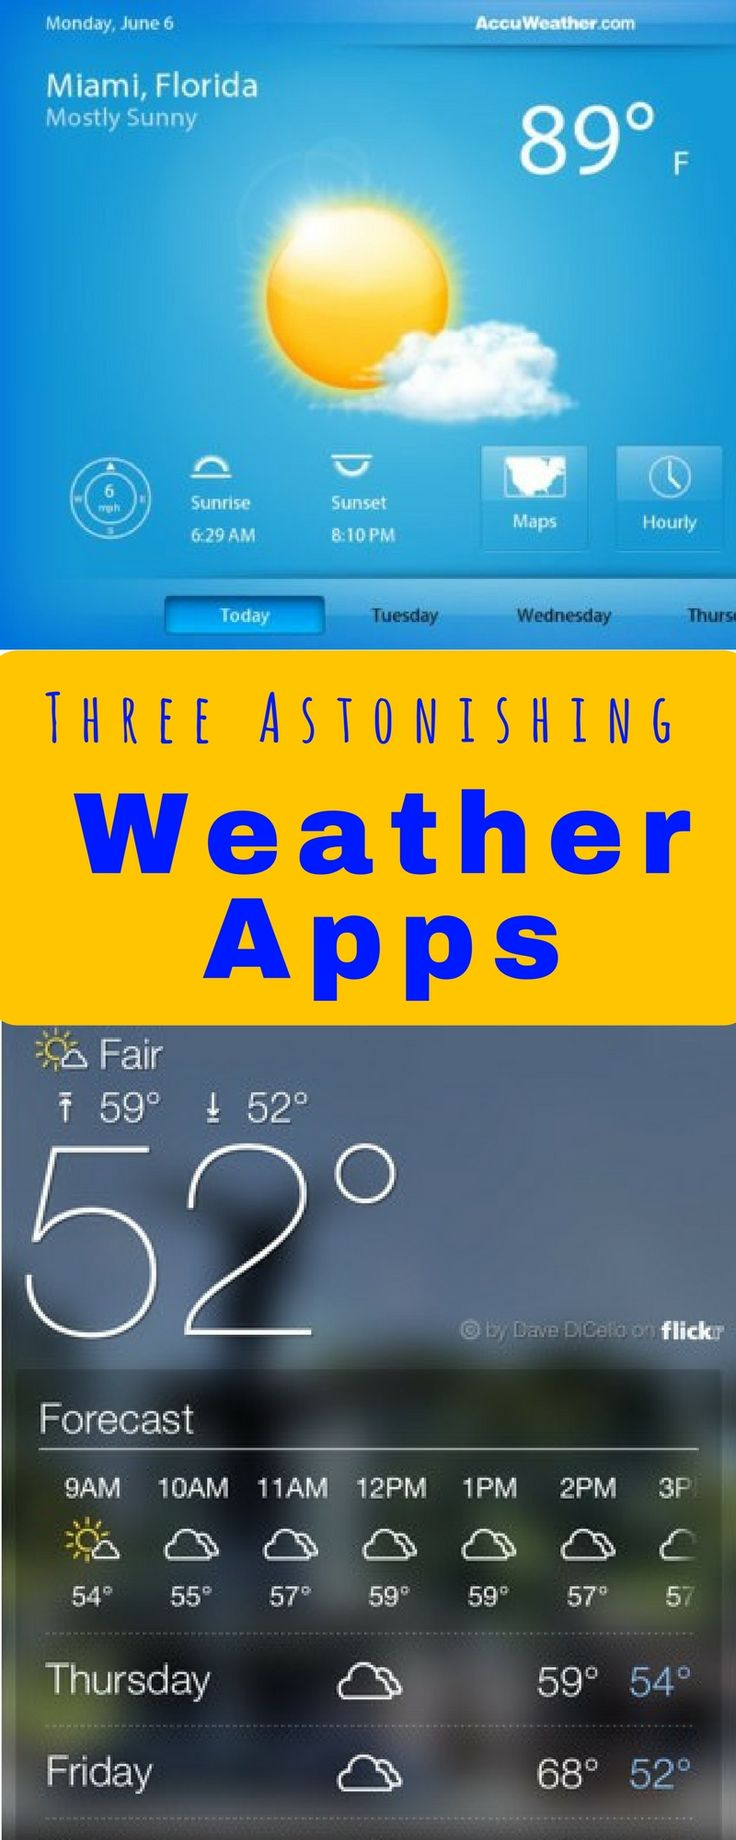 Three Astonishing Weather Apps To Use A weather app should, not only be convenient and interesting, but should also should be accurate and detailed enough to be really useful. As long as you have a smartphone and a weather app, you will always be prepared for snow flurries or sudden rain. Checking the weather can be boring for most people. But these apps, with their new and dandy ways of weather checking makes it all the more fun and interesting.